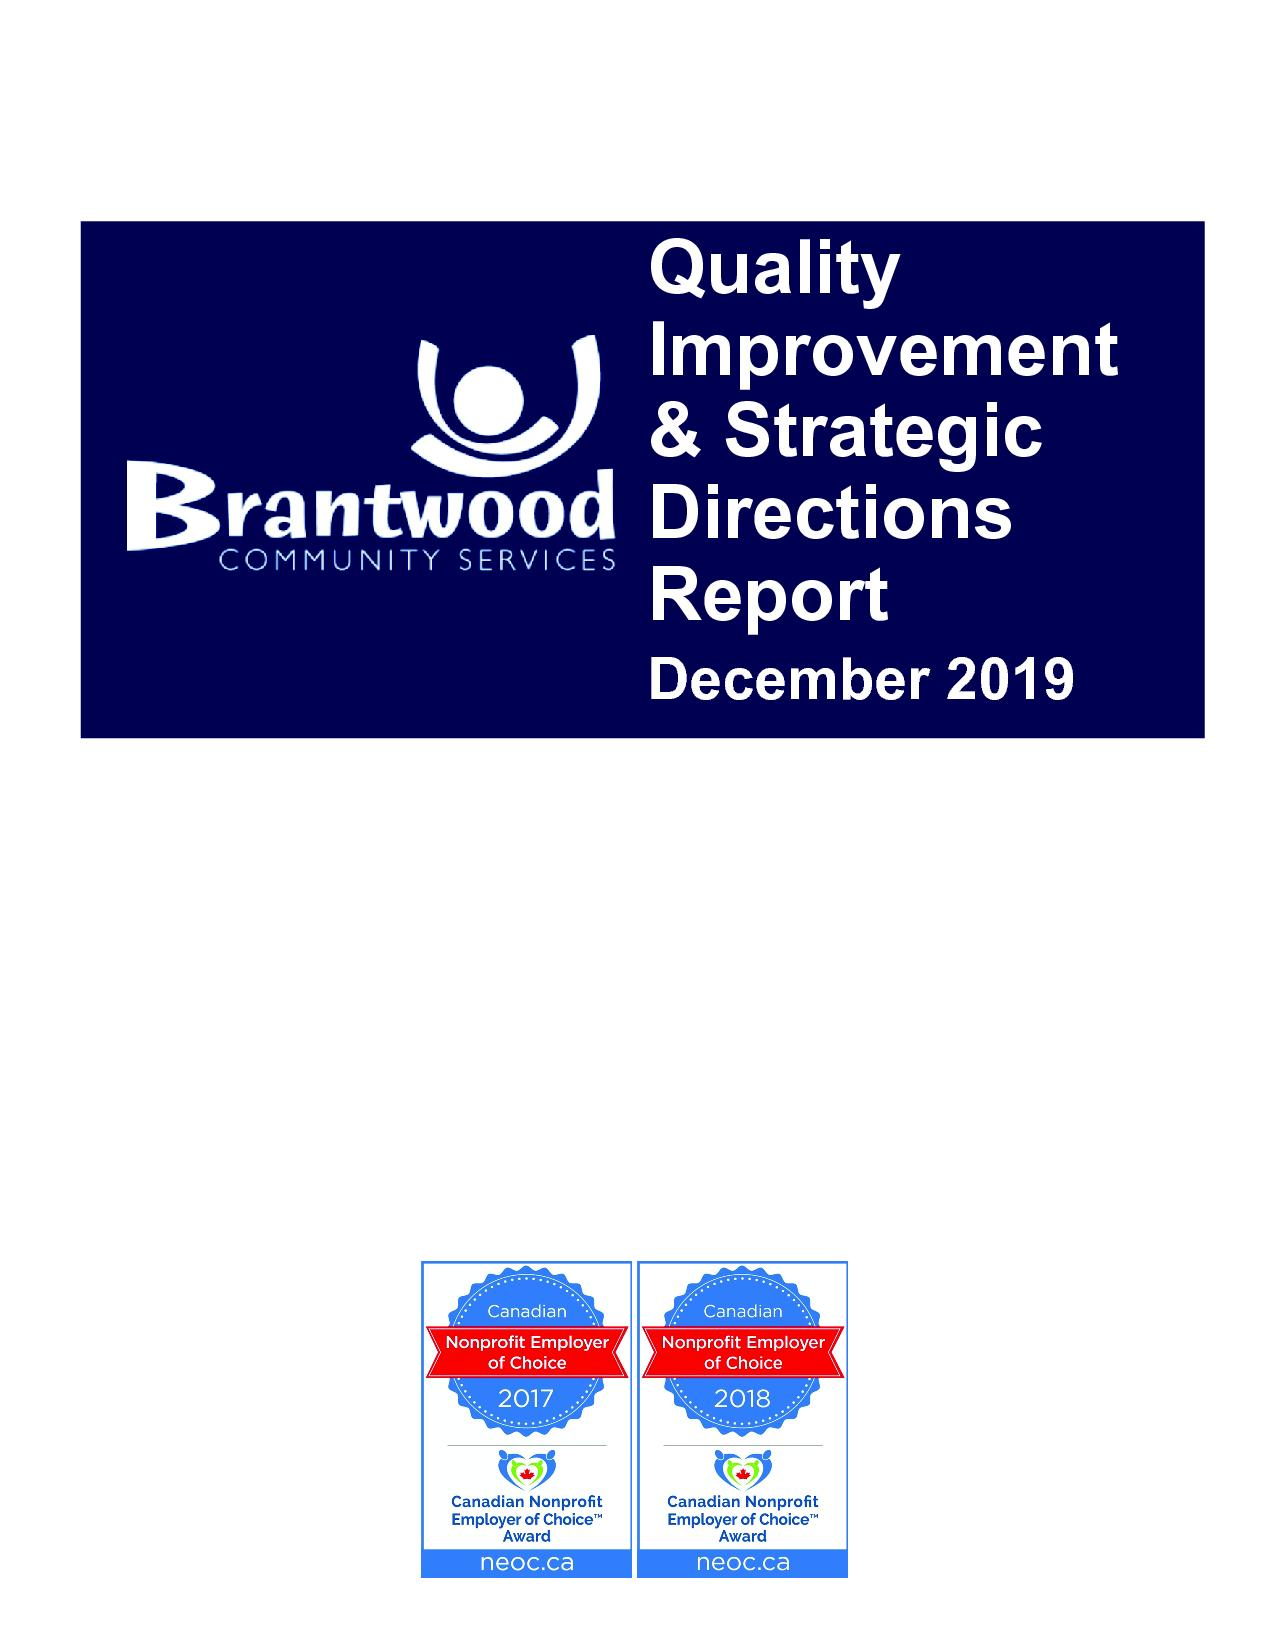 FINAL - Quality Improvement & Strategic Directions Report - December 20191.jpg